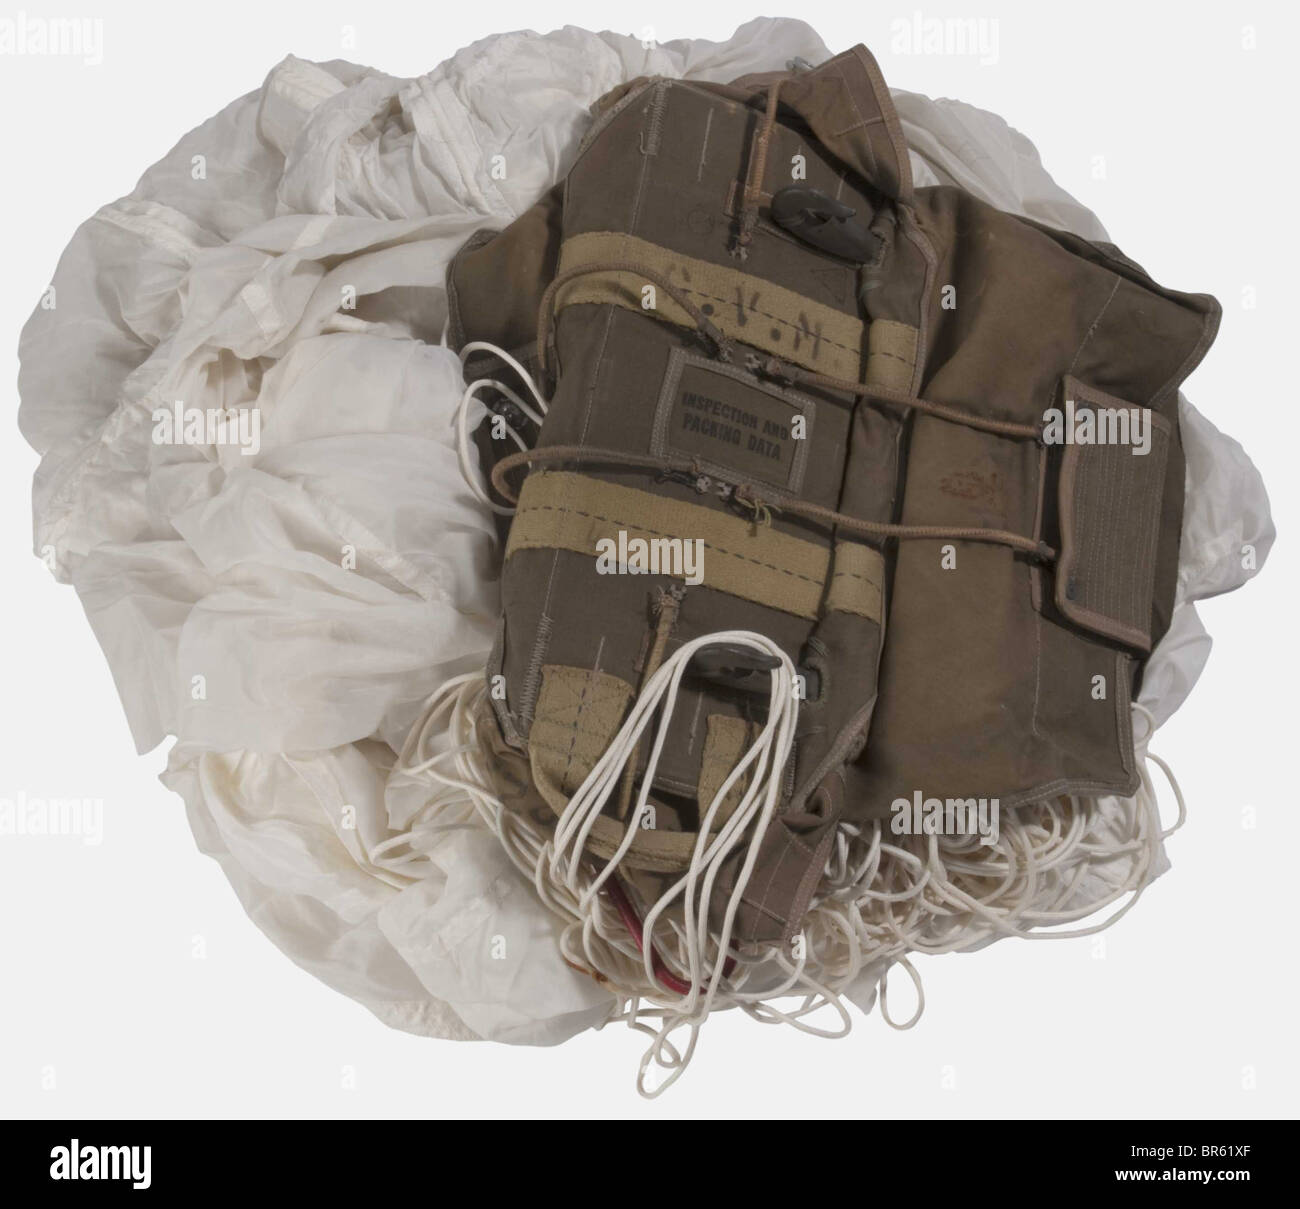 A US paratrooper reserve parachute, type T5 complete with cover, lines and canopy of white silk, dated 1943, with - Stock Image